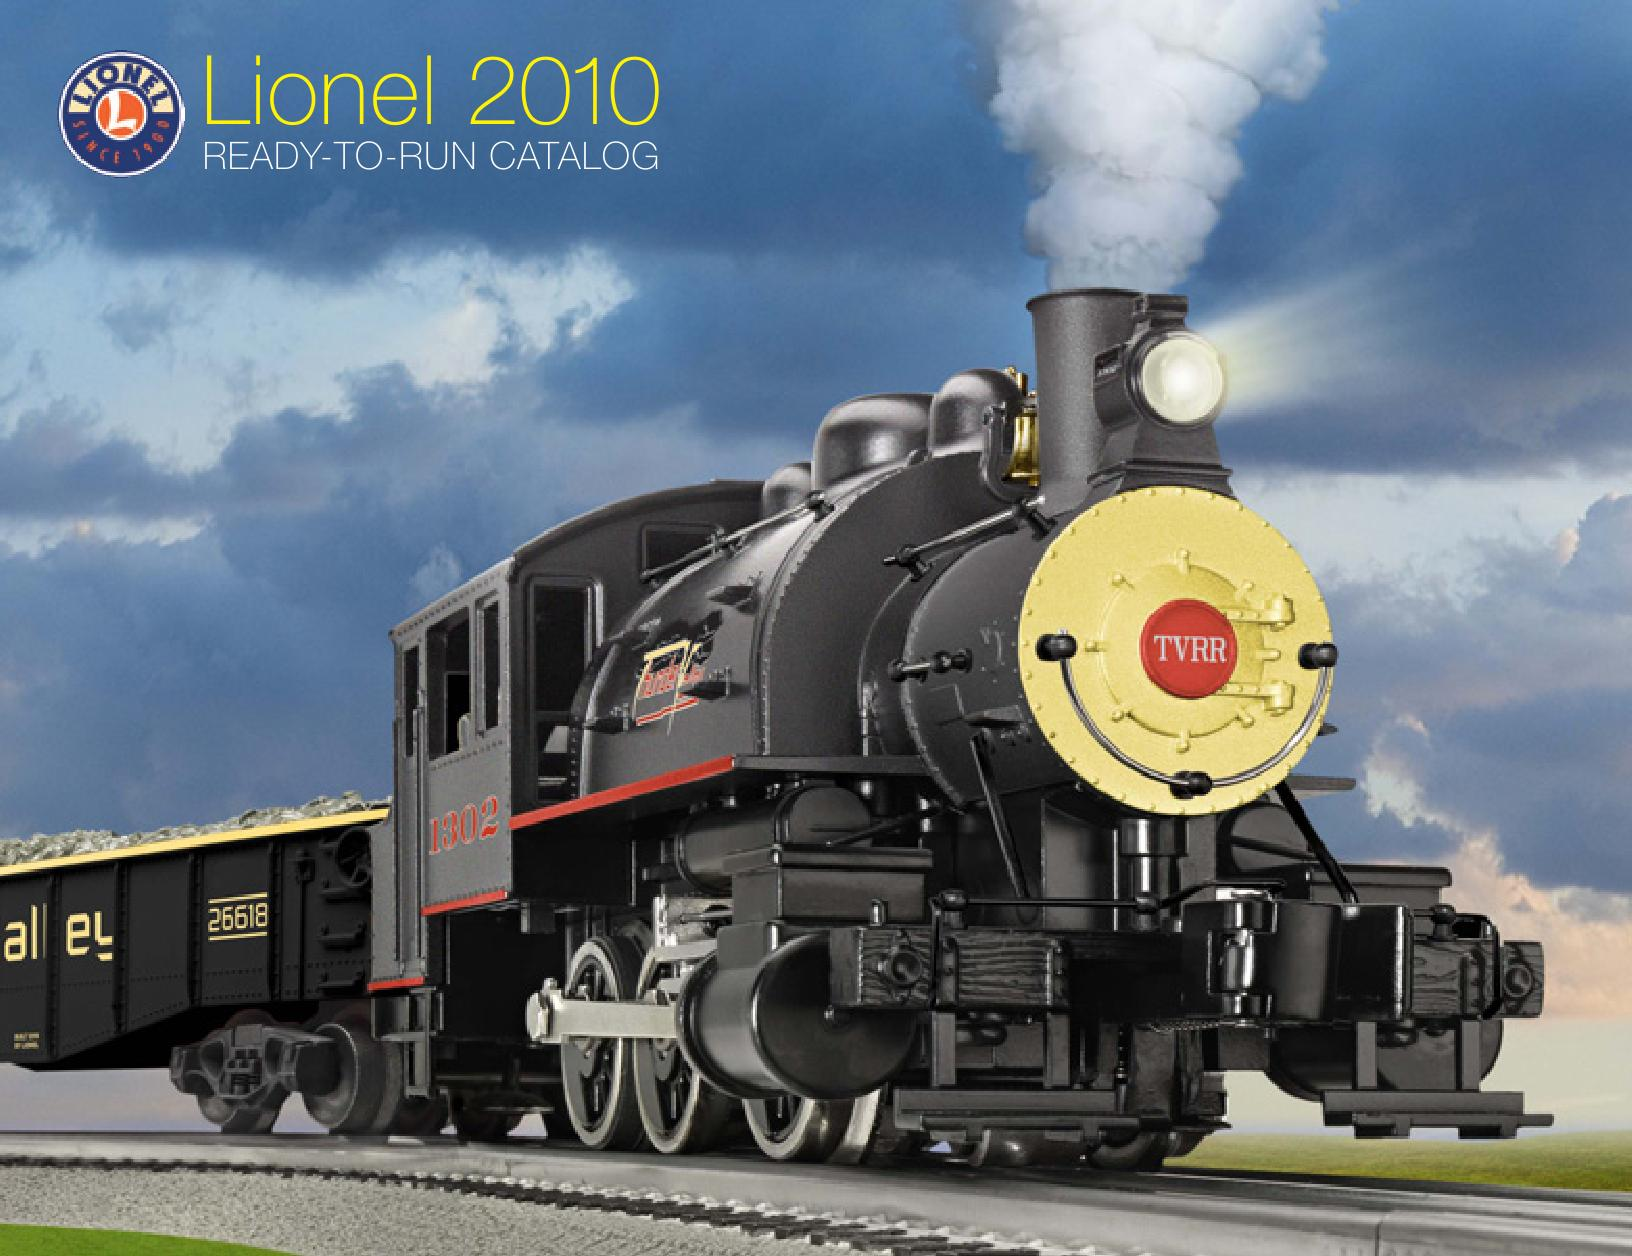 Lionel Catalogs - Ready To Run 2010